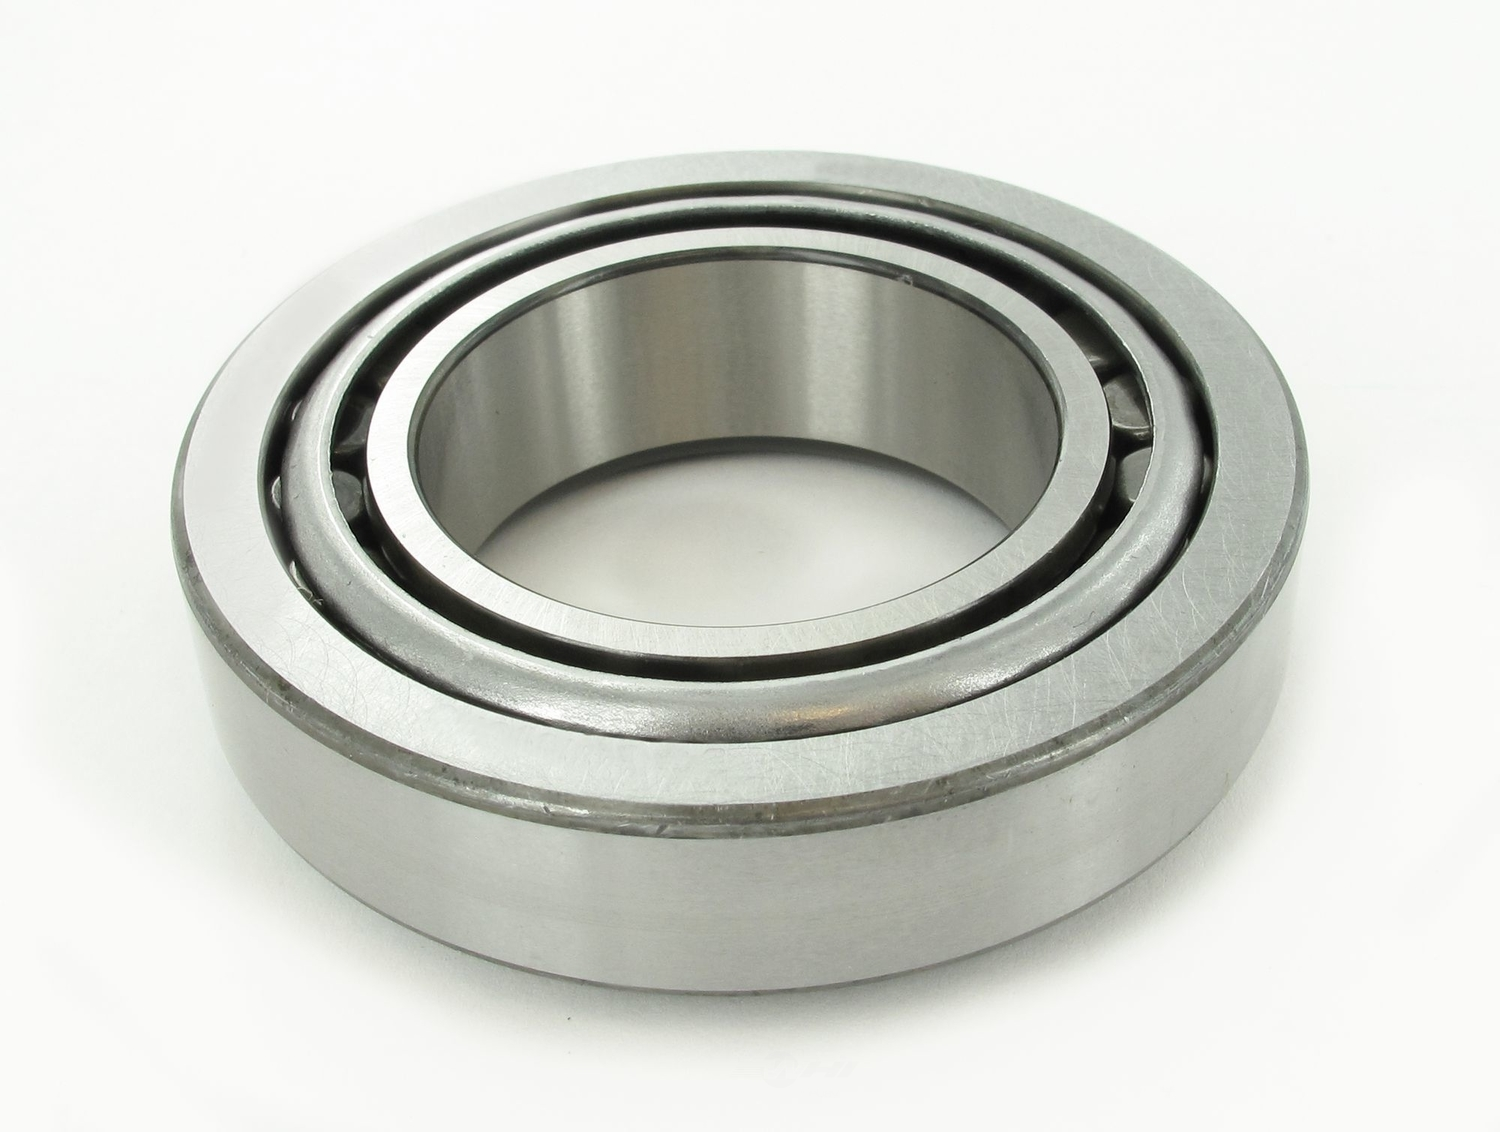 SKF (CHICAGO RAWHIDE) - Axle Differential Bearing - SKF BR35